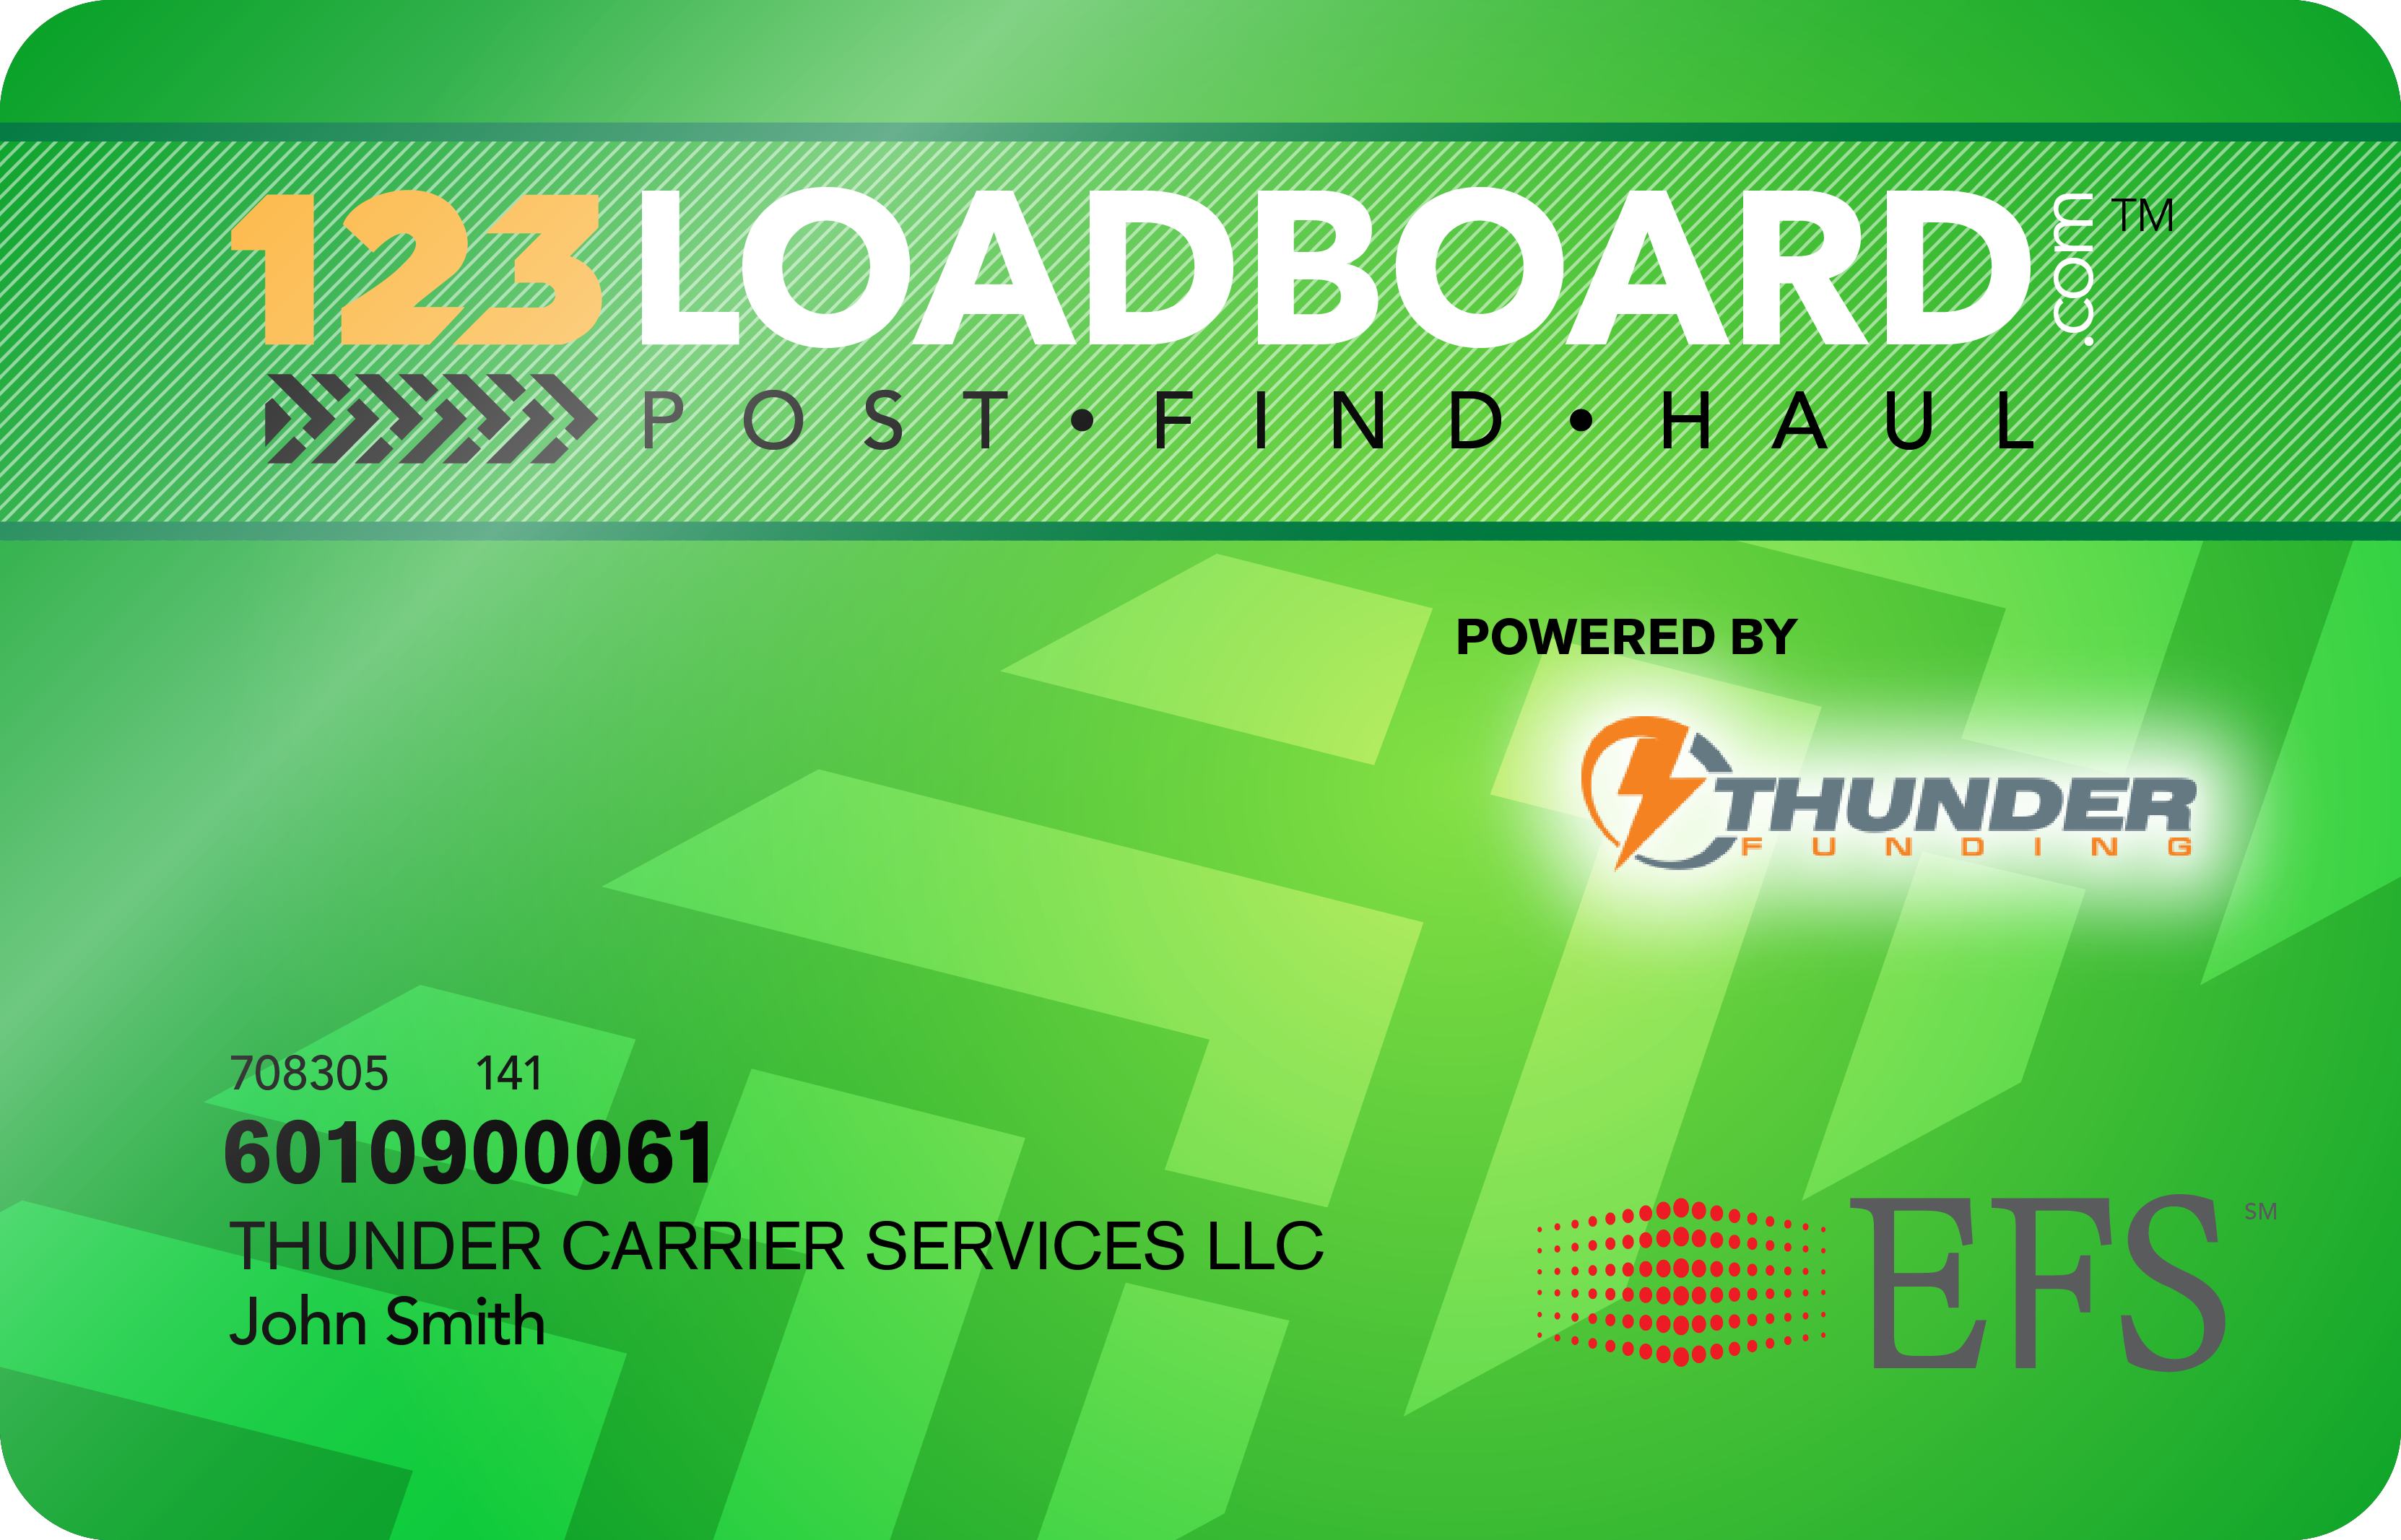 123Loadboard introduces a fuel card program that rewards